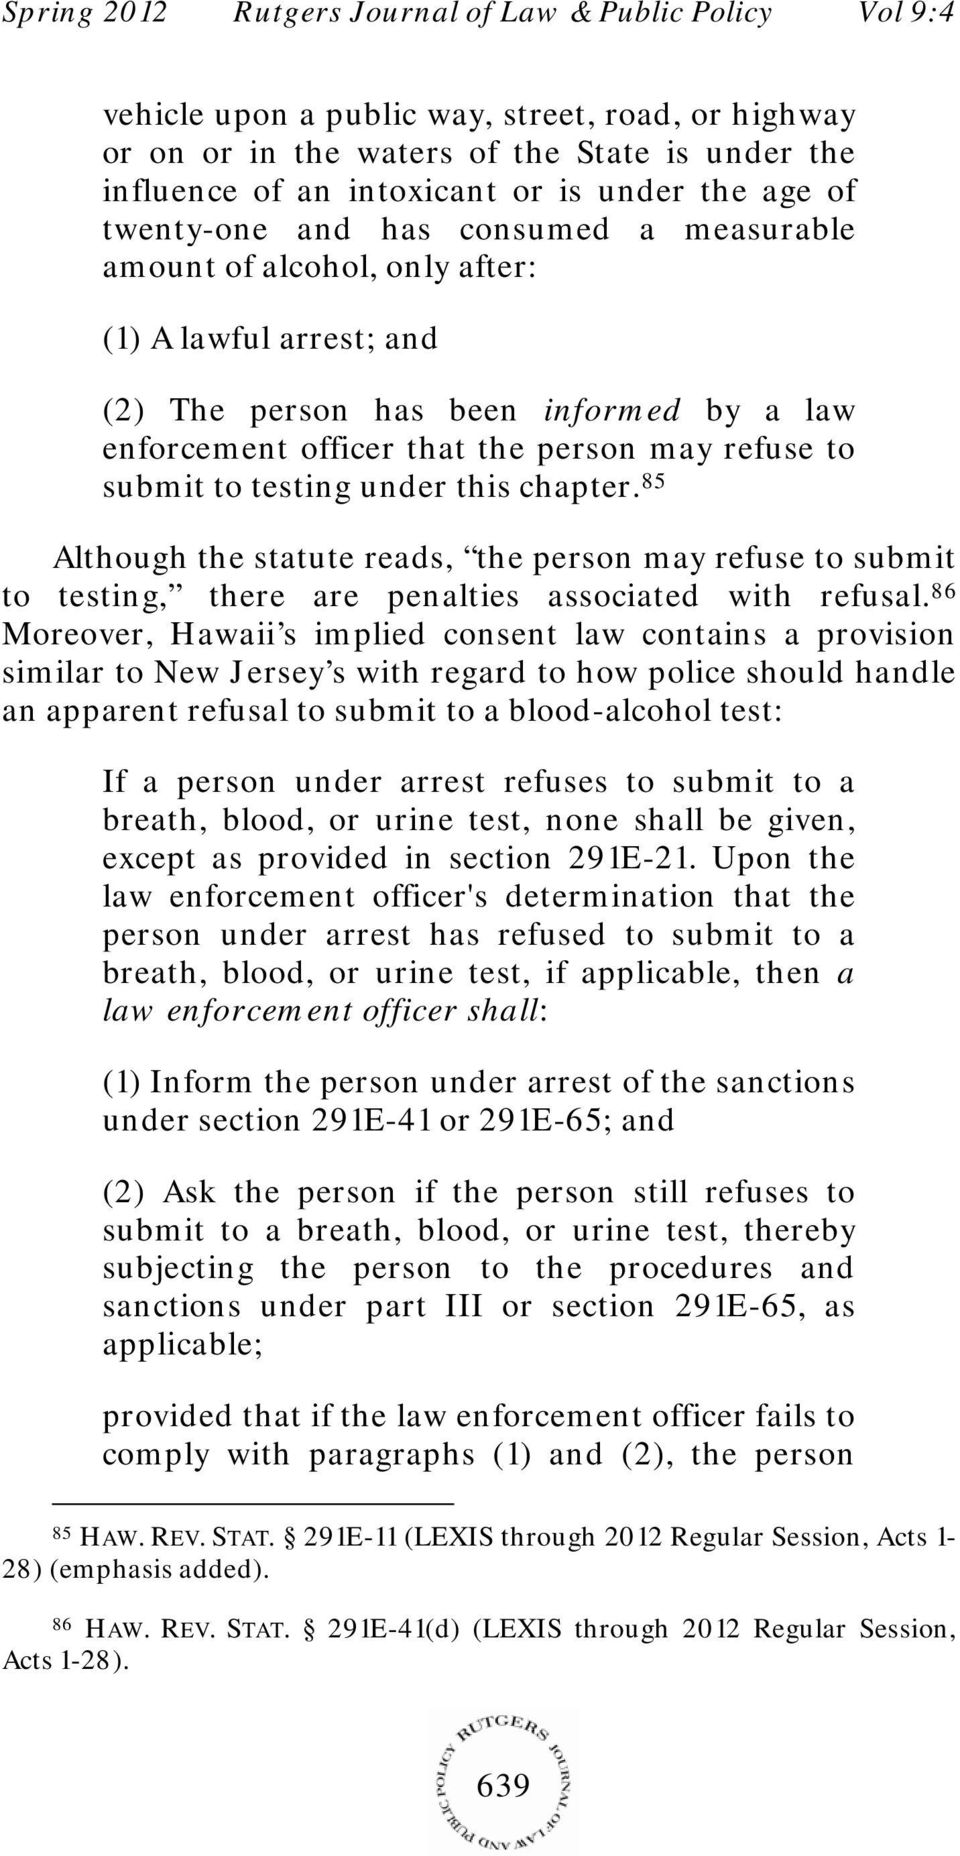 85 Although the statute reads, the person may refuse to submit to testing, there are penalties associated with refusal.